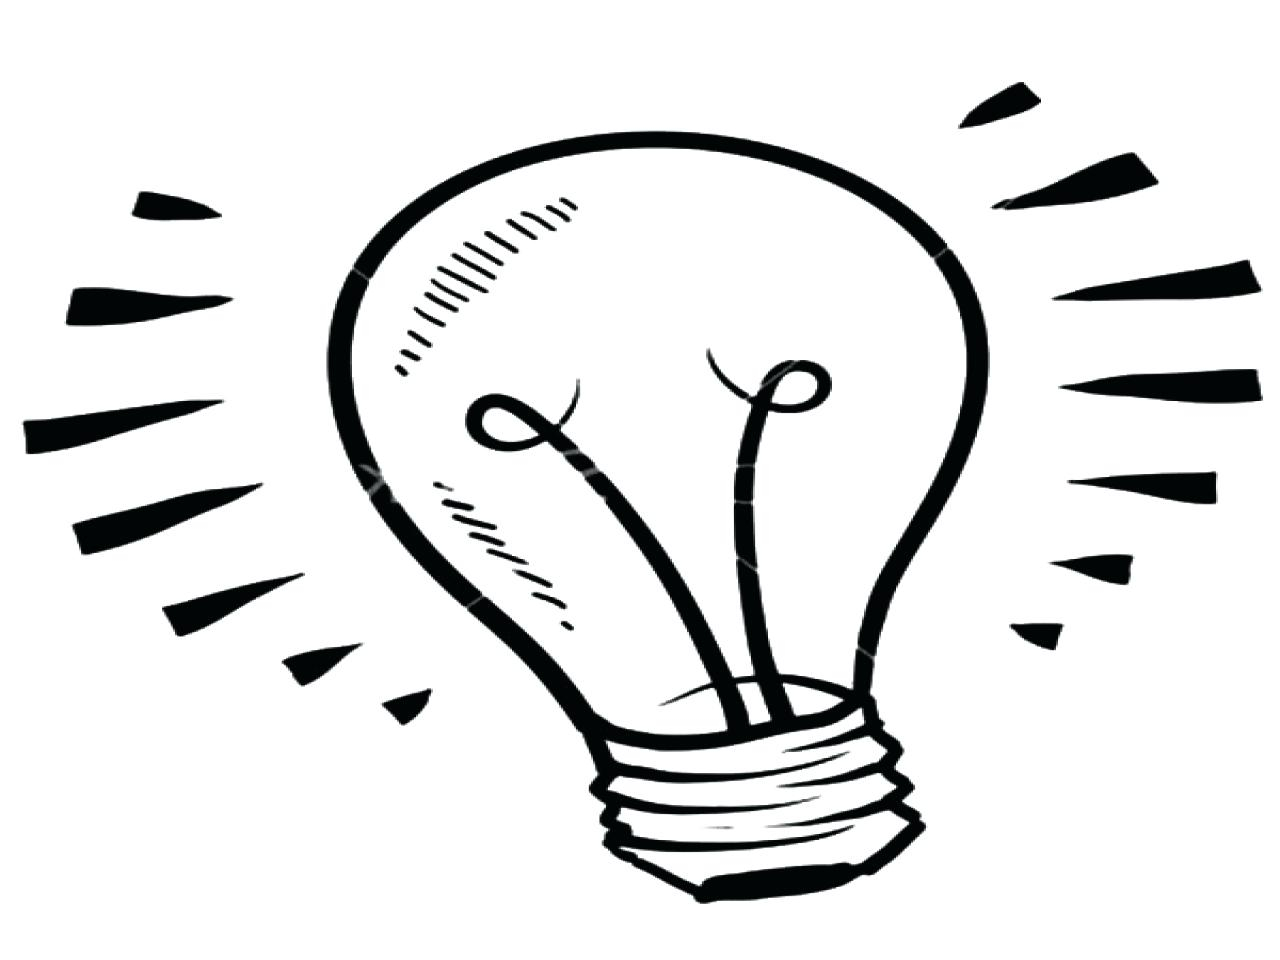 Light Bulb Coloring Page Bulb Coloring Pages At Getdrawings Free For Personal Use Bulb